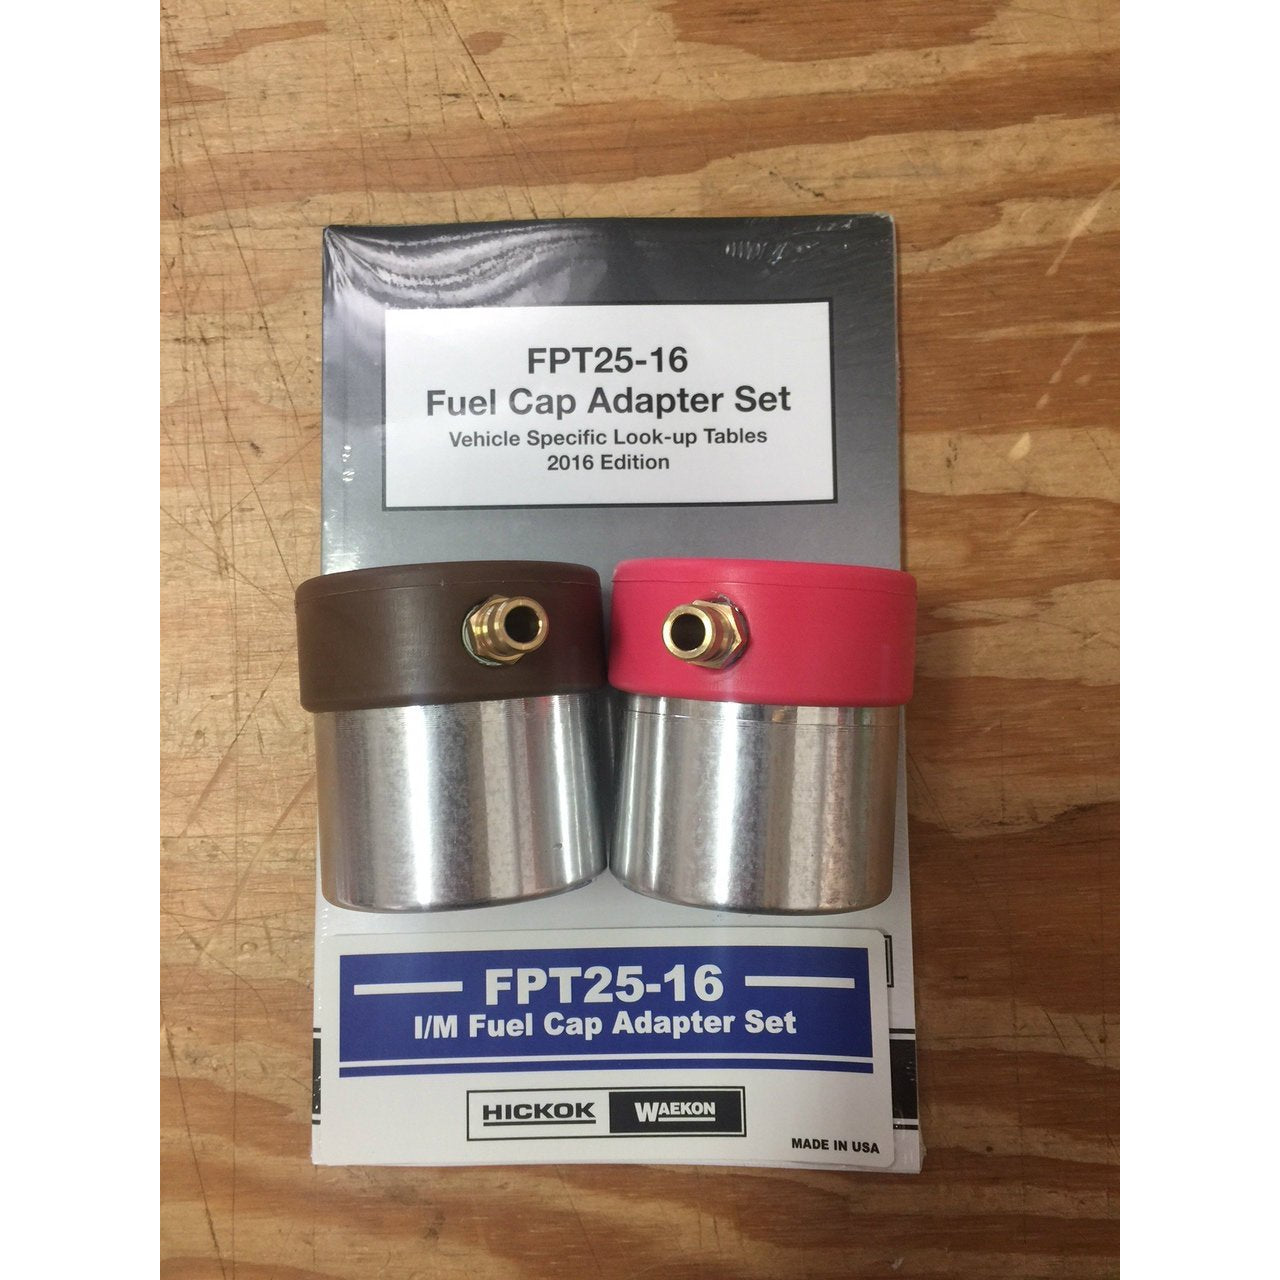 ** NEW ** WAEKON FUEL CAP ADAPTER KIT FPT 25-16